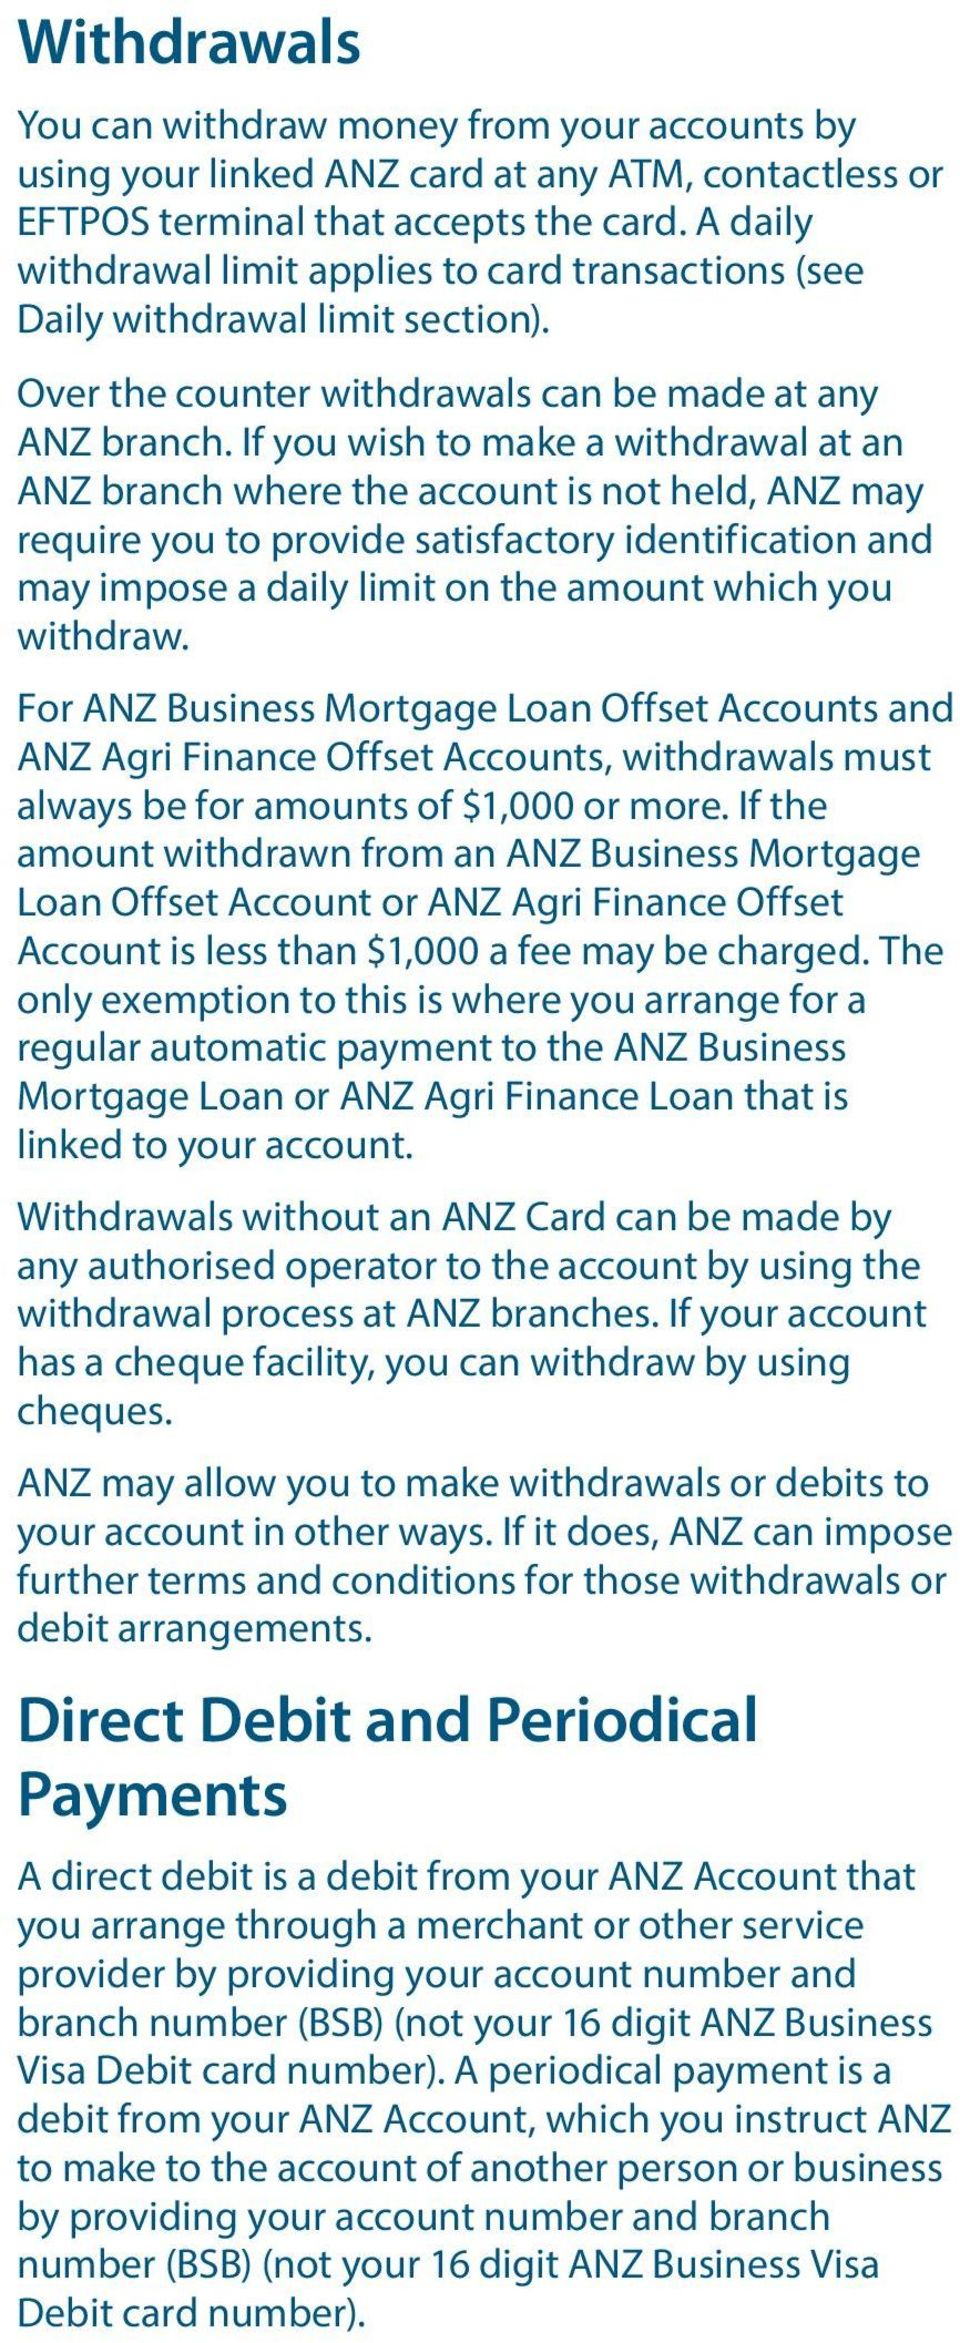 If you wish to make a withdrawal at an ANZ branch where the account is not held, ANZ may require you to provide satisfactory identification and may impose a daily limit on the amount which you